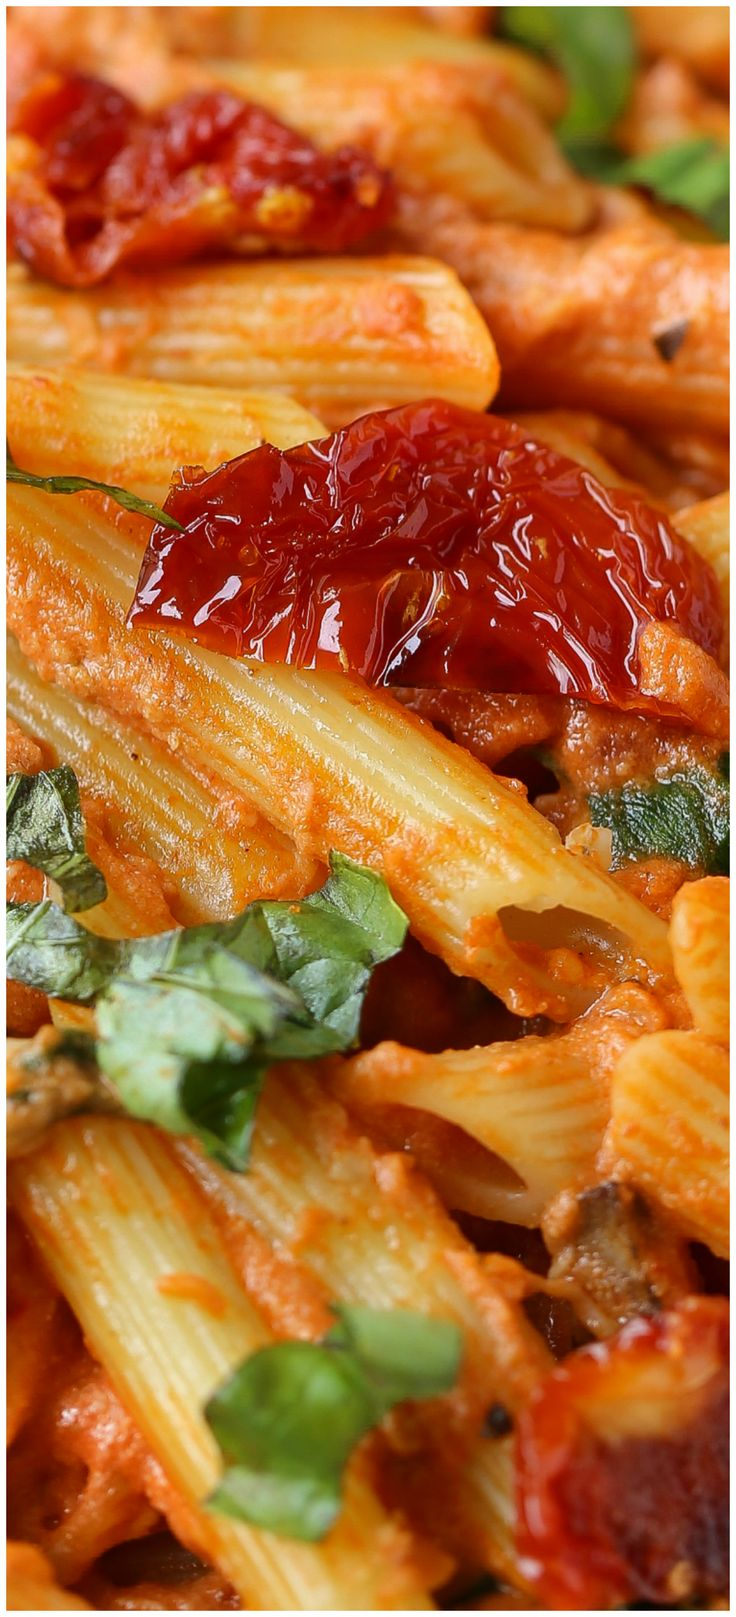 Mozzarella Penne Rosa Pasta with Sun-Dried Tomatoes and Spinach.